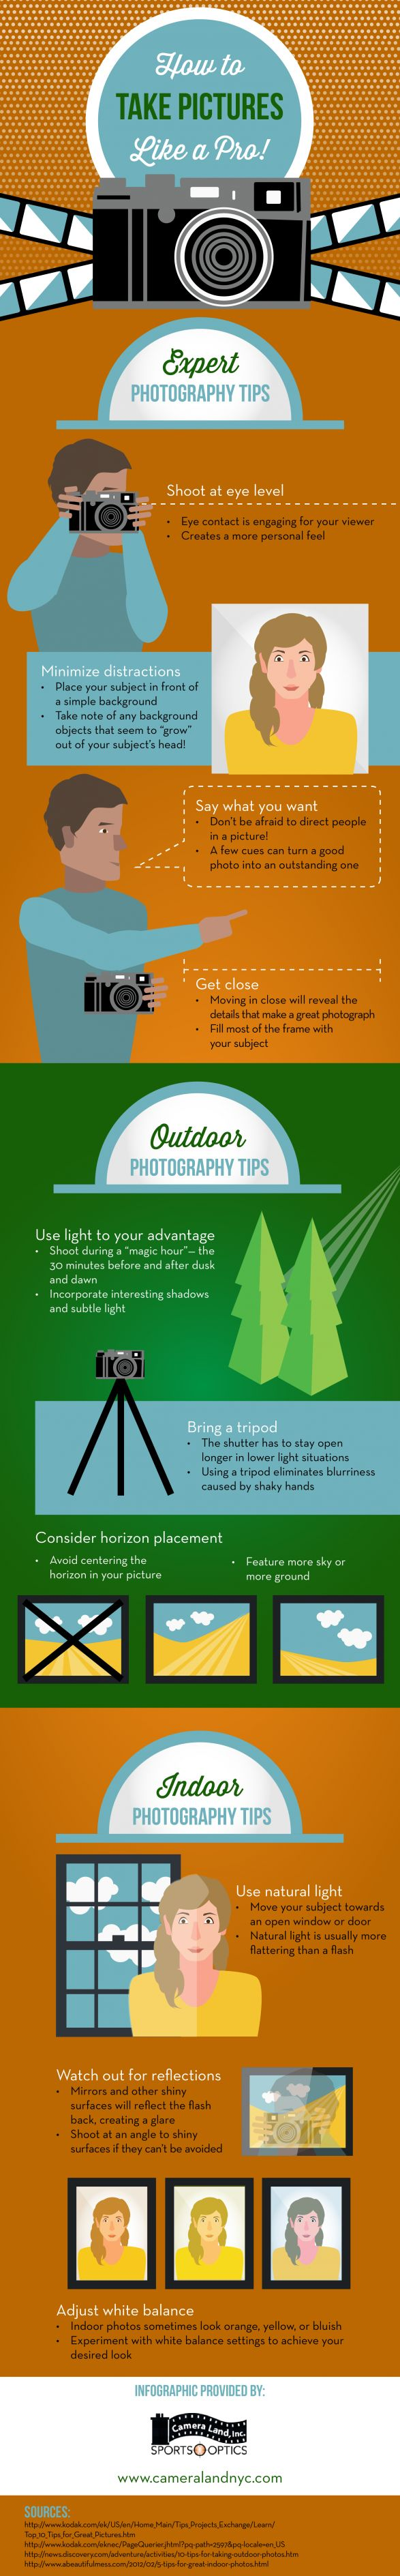 Behind the Lens: How to Take Photos Like a Pro